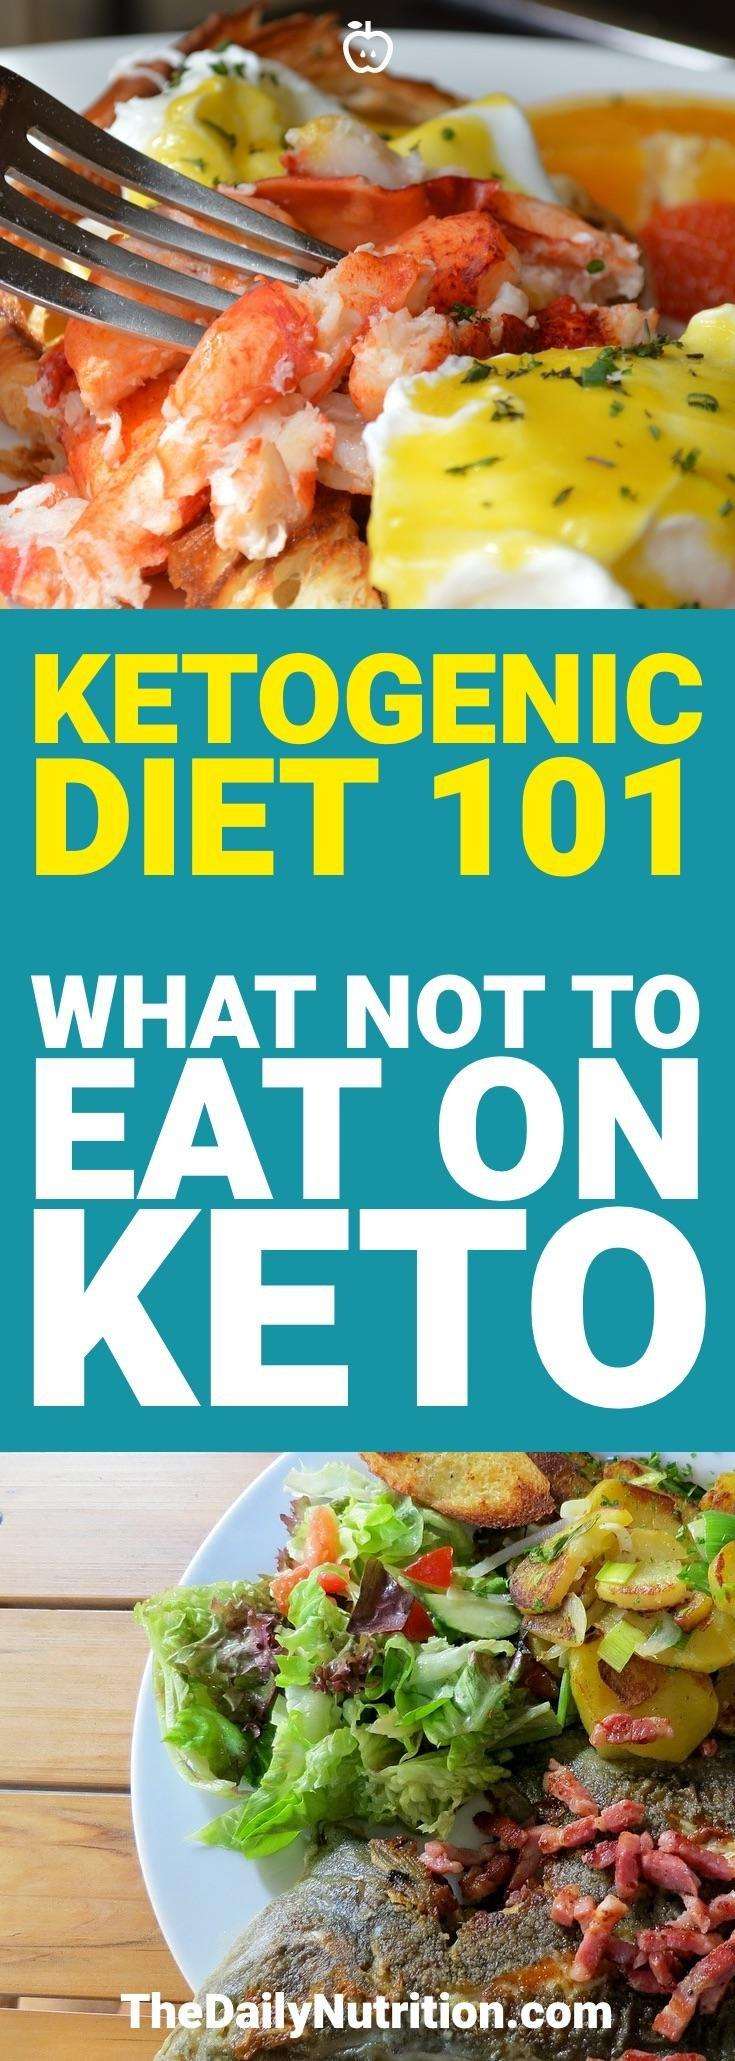 Ketogenic Diet: What Not To Eat On Keto